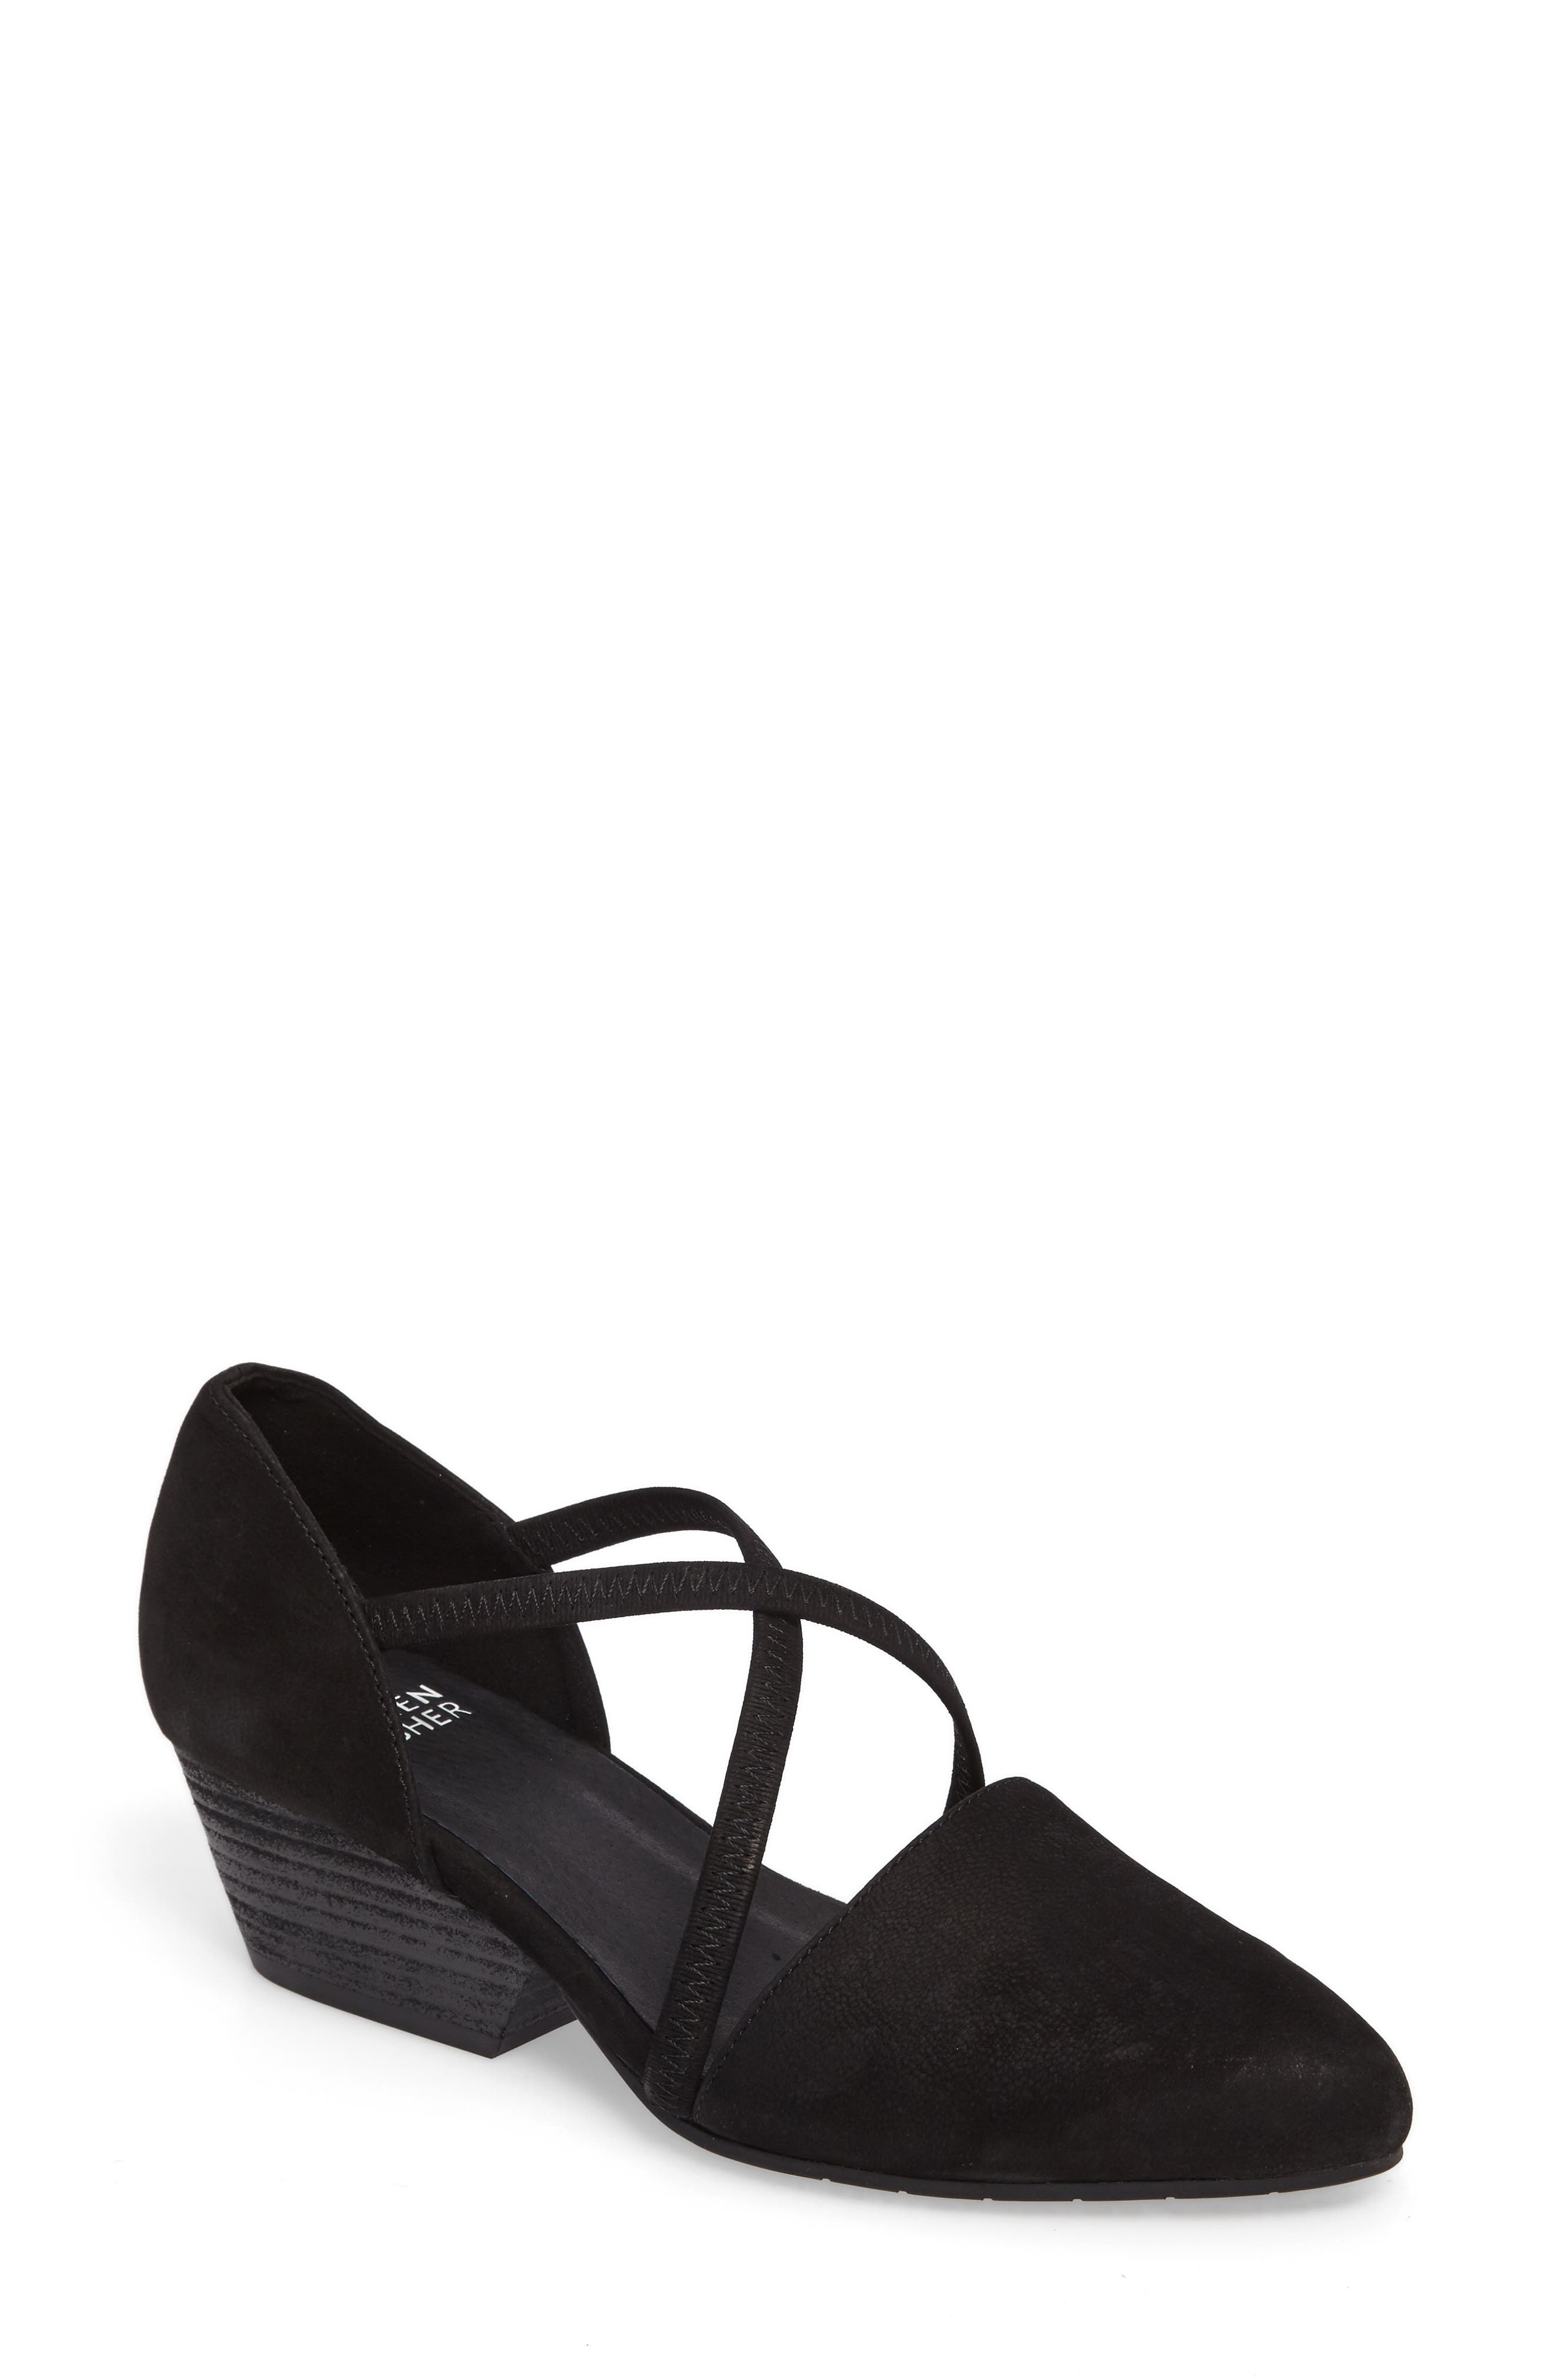 Poet Crisscross Pump,                         Main,                         color, 001